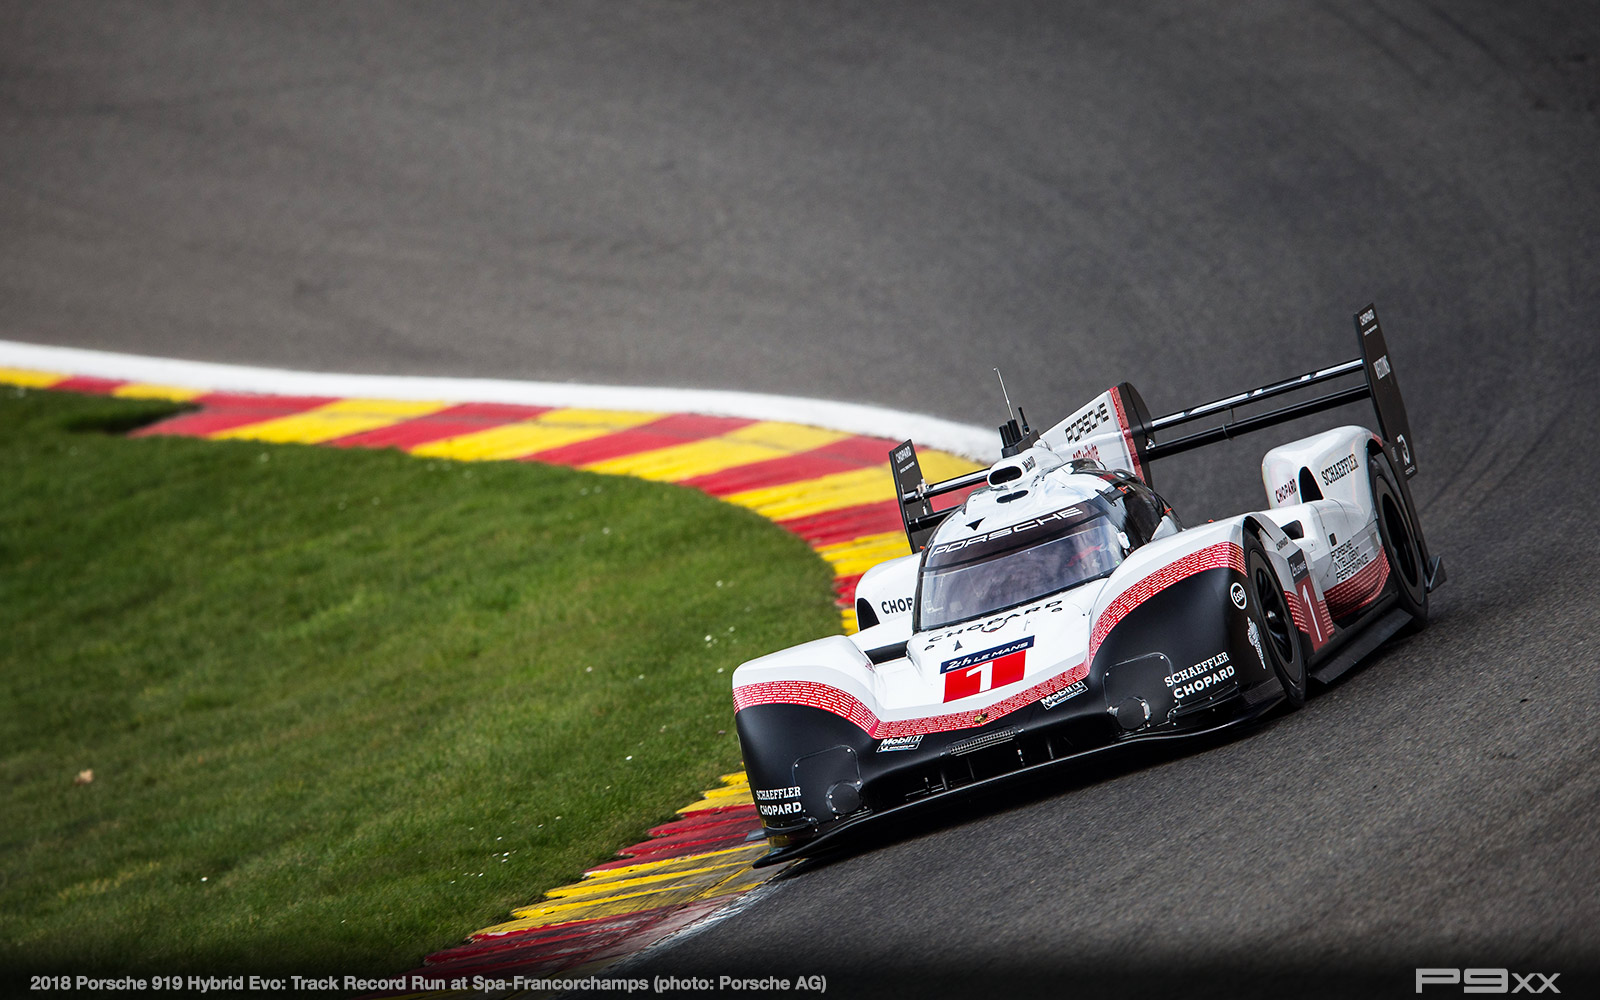 2018-porsche-919-evo-tribute-spa-francorchamps-468